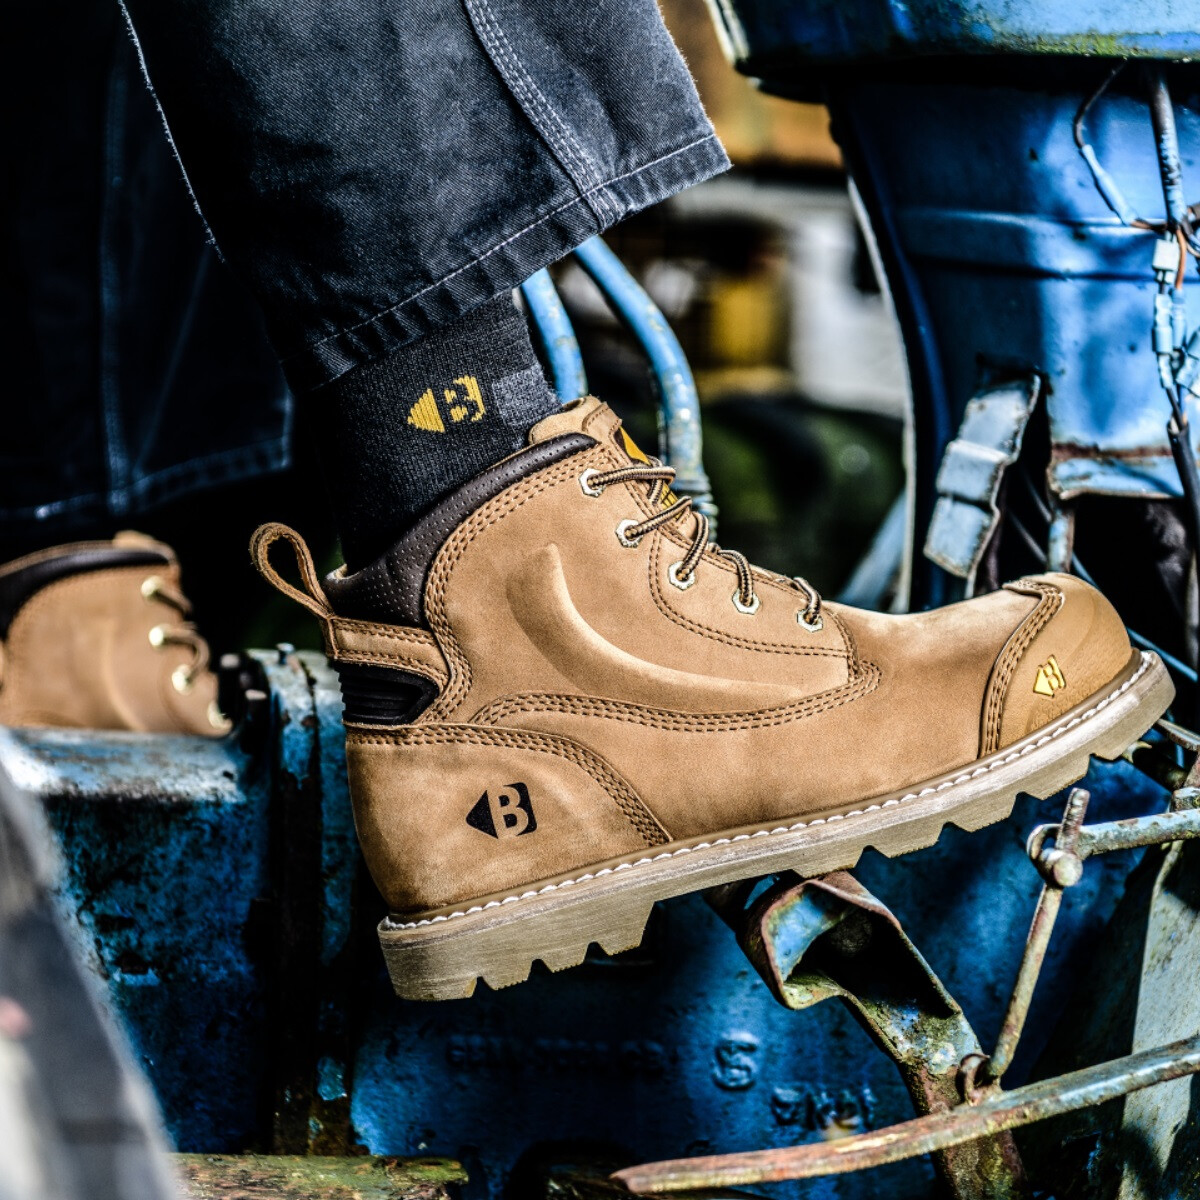 3f34b217685 Buckler Boots B650SM Honey Nubuck Leather Goodyear Welted Safety Boot SB P  HRO SRC